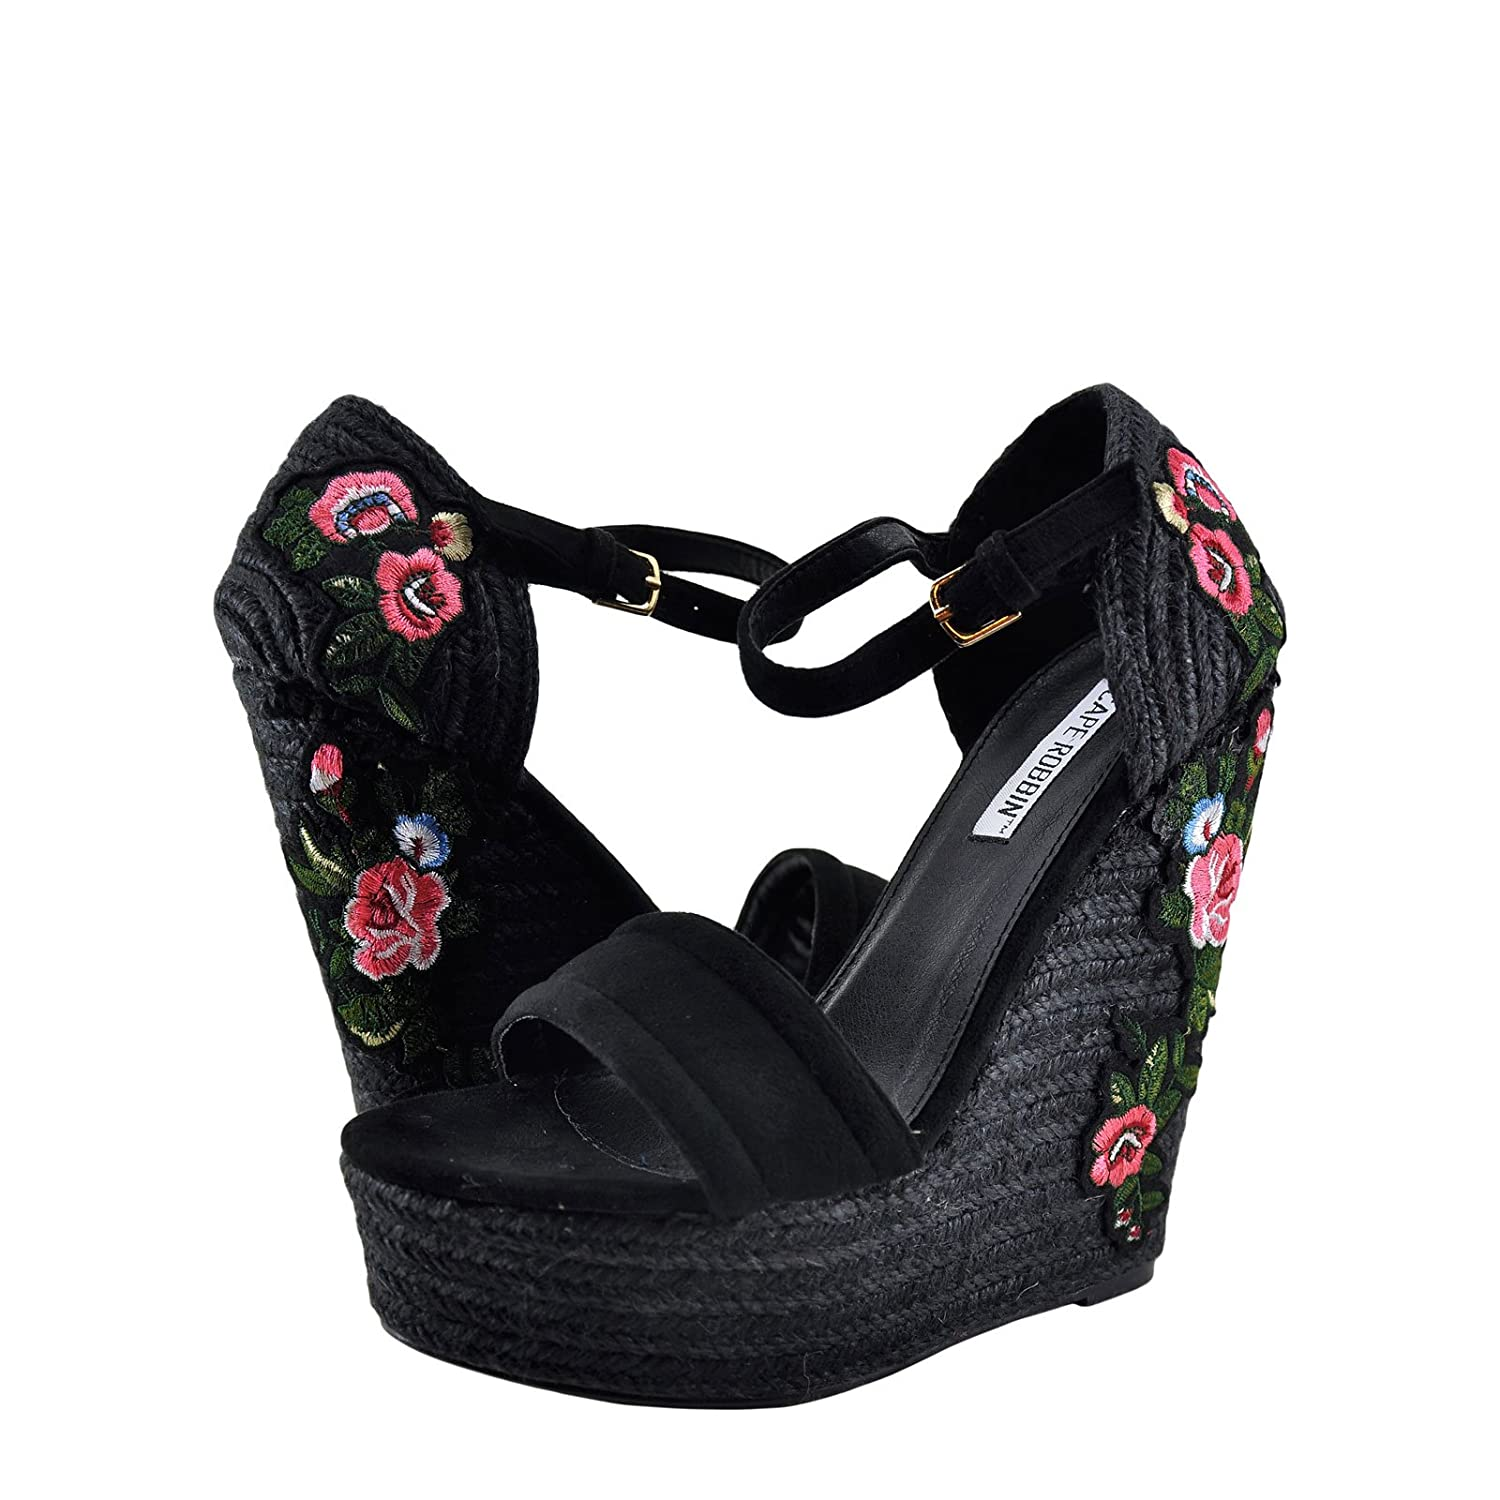 Cape Robbin Zelda-8 Womens Floral Embroidered Straw Wedges B074W7XDN2 6 B(M) US|Black